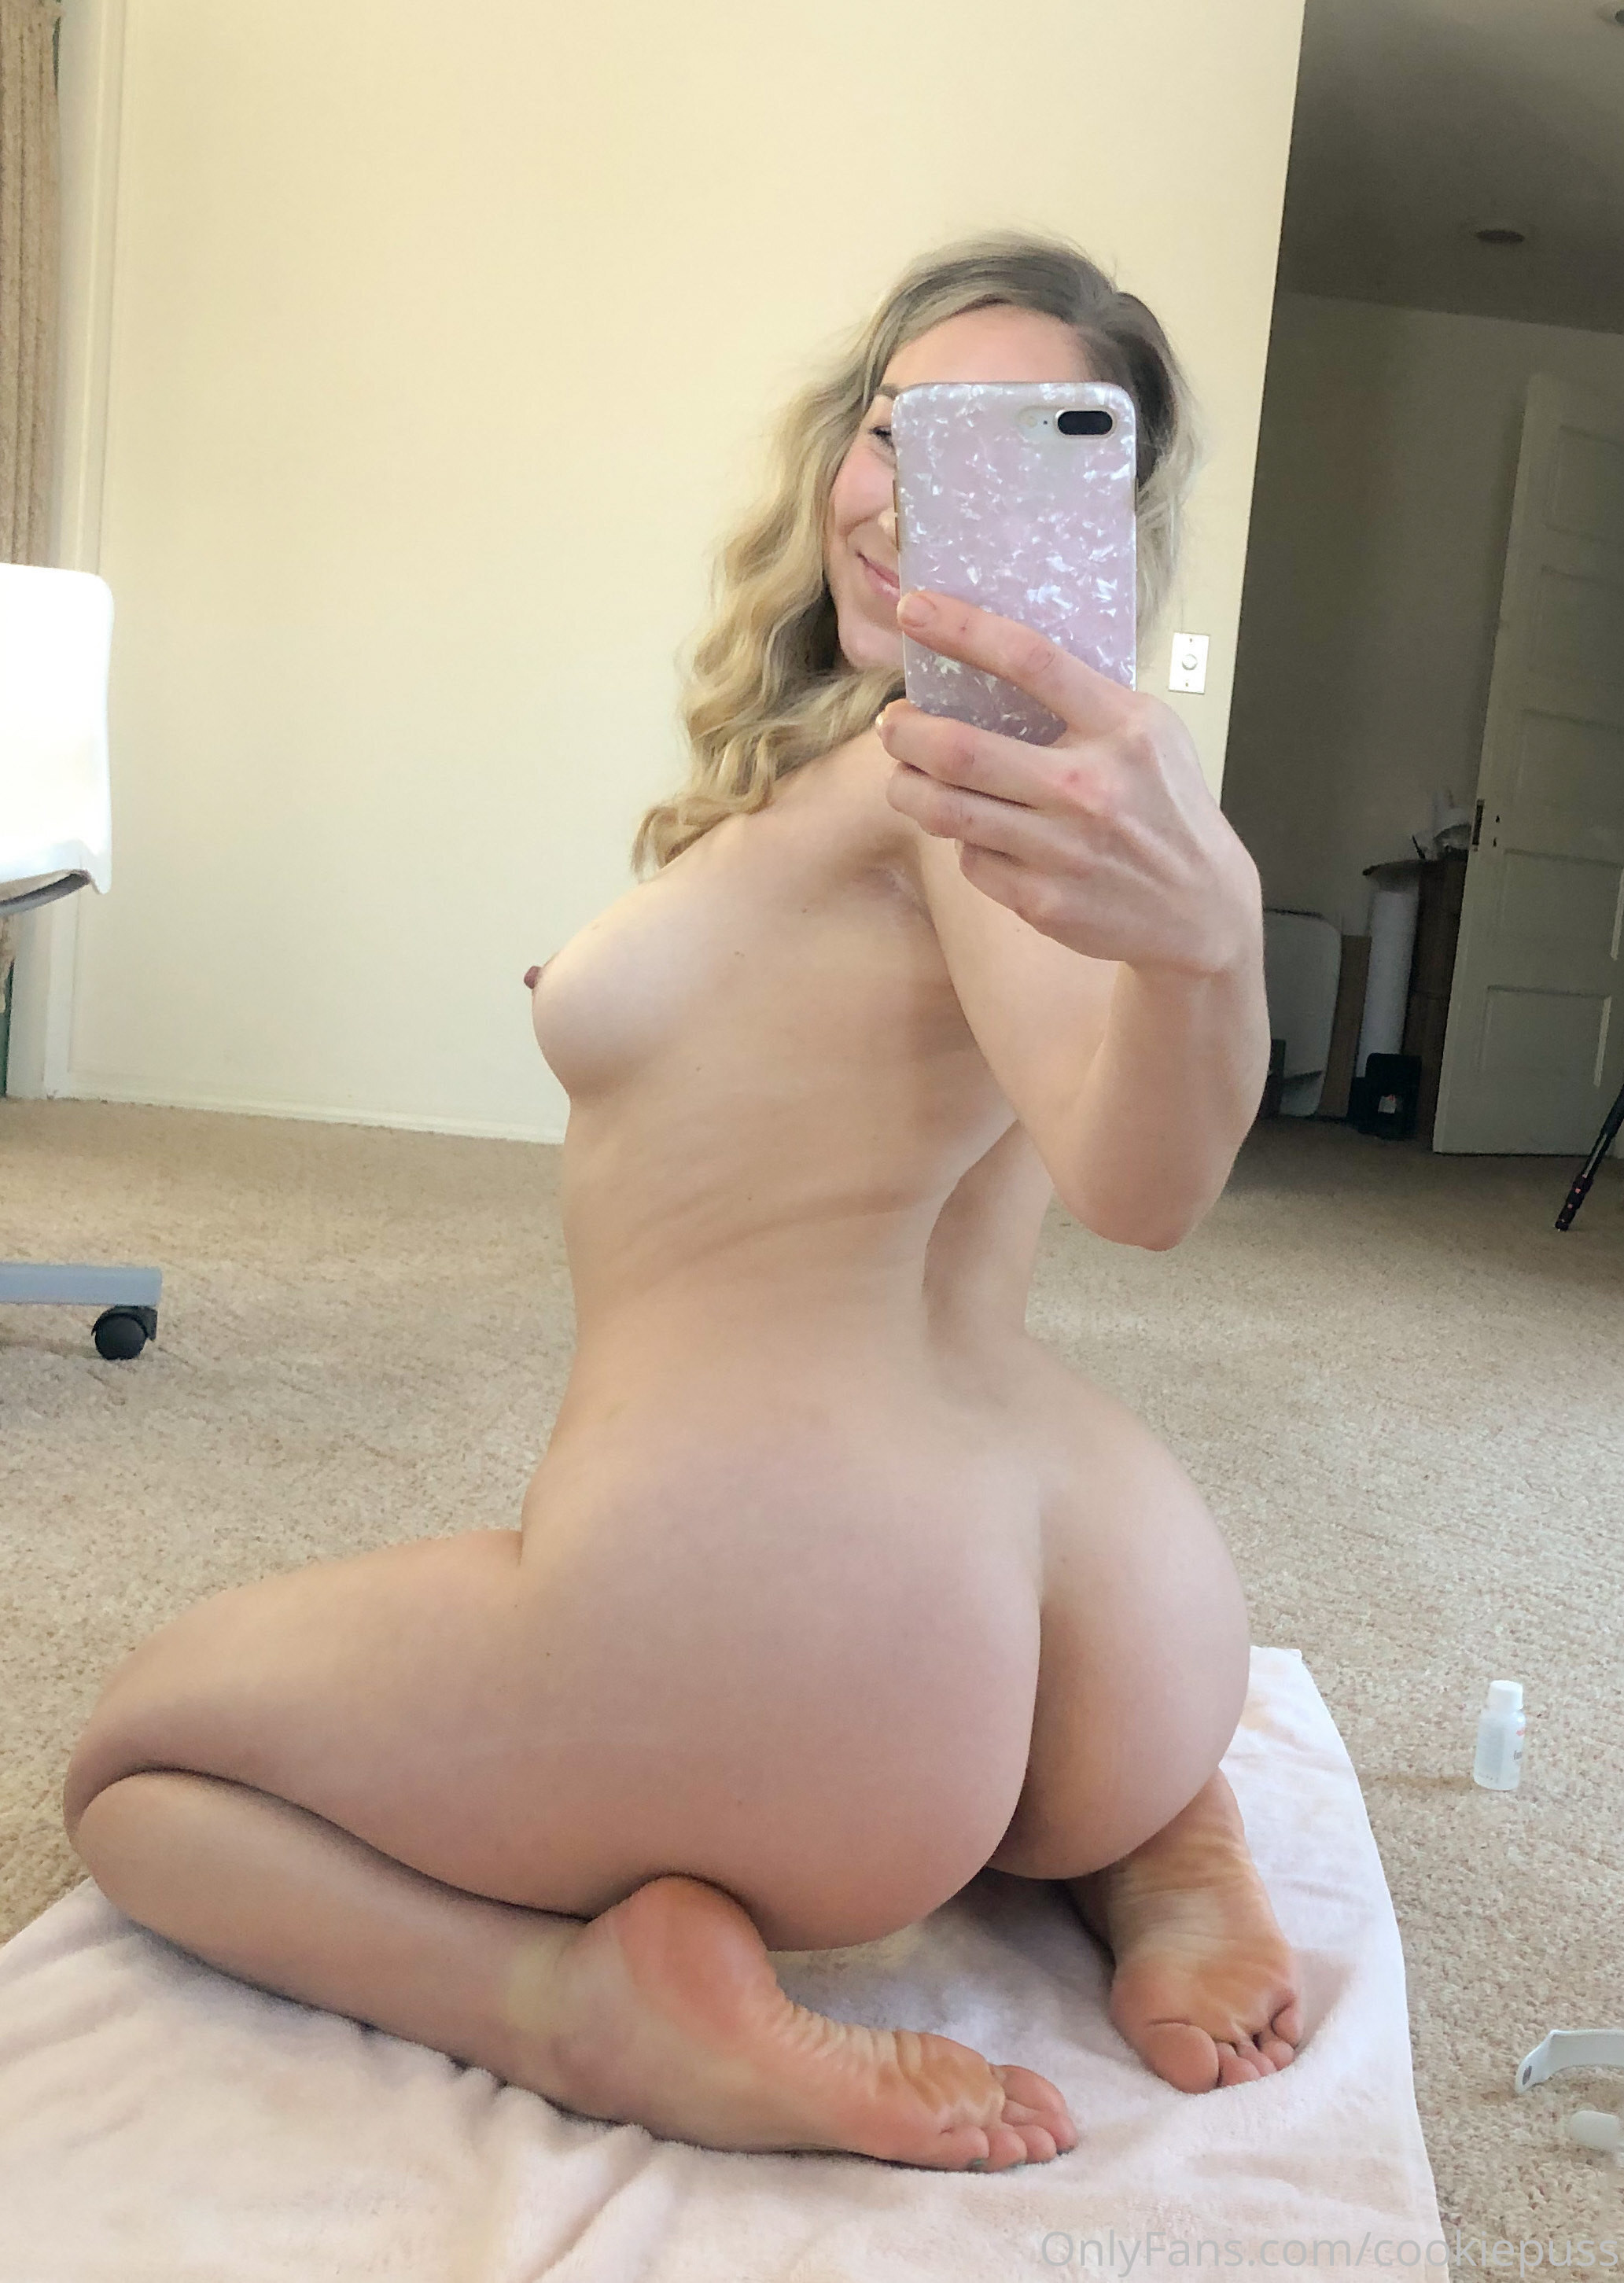 cookiepuss Onlyfans Leaked Nudes fappenings.com 51